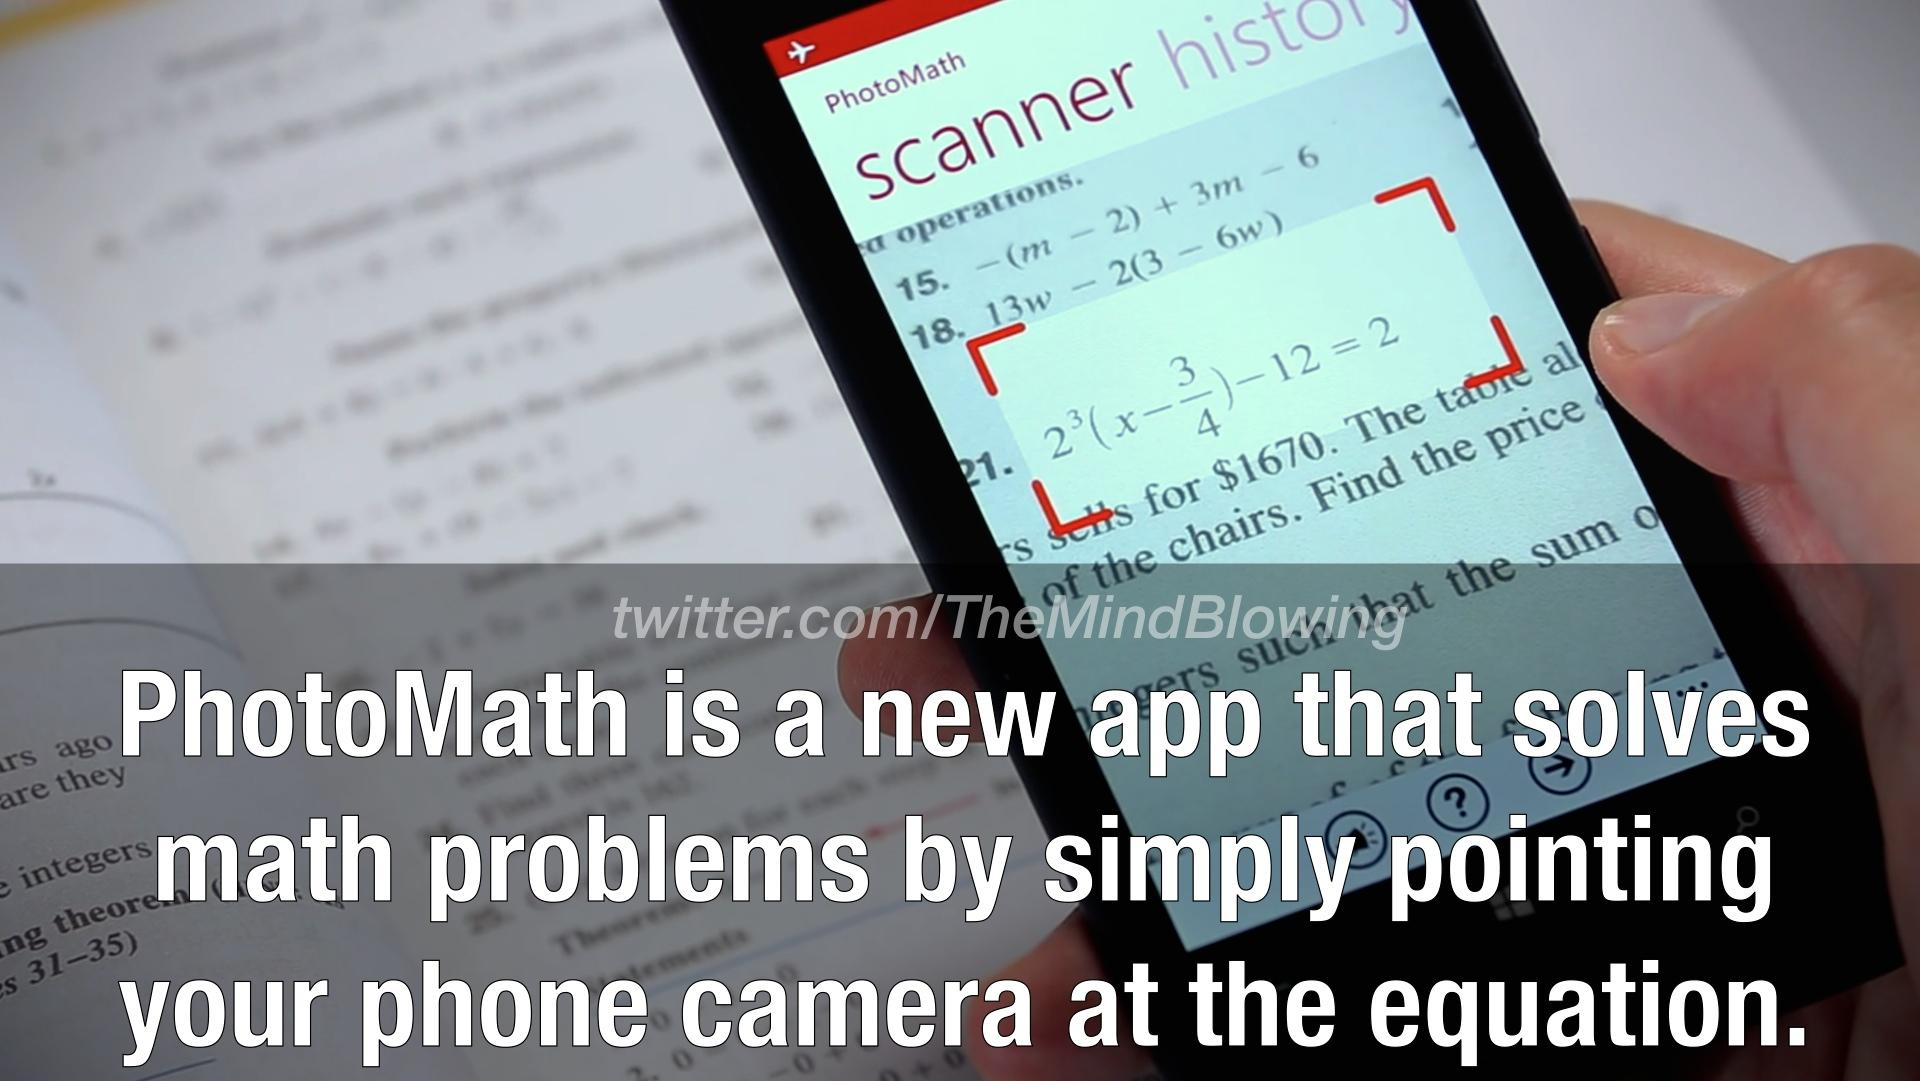 Have you heard about the 'Photo Math' yet? http://t.co/gg9qBeA9Cm